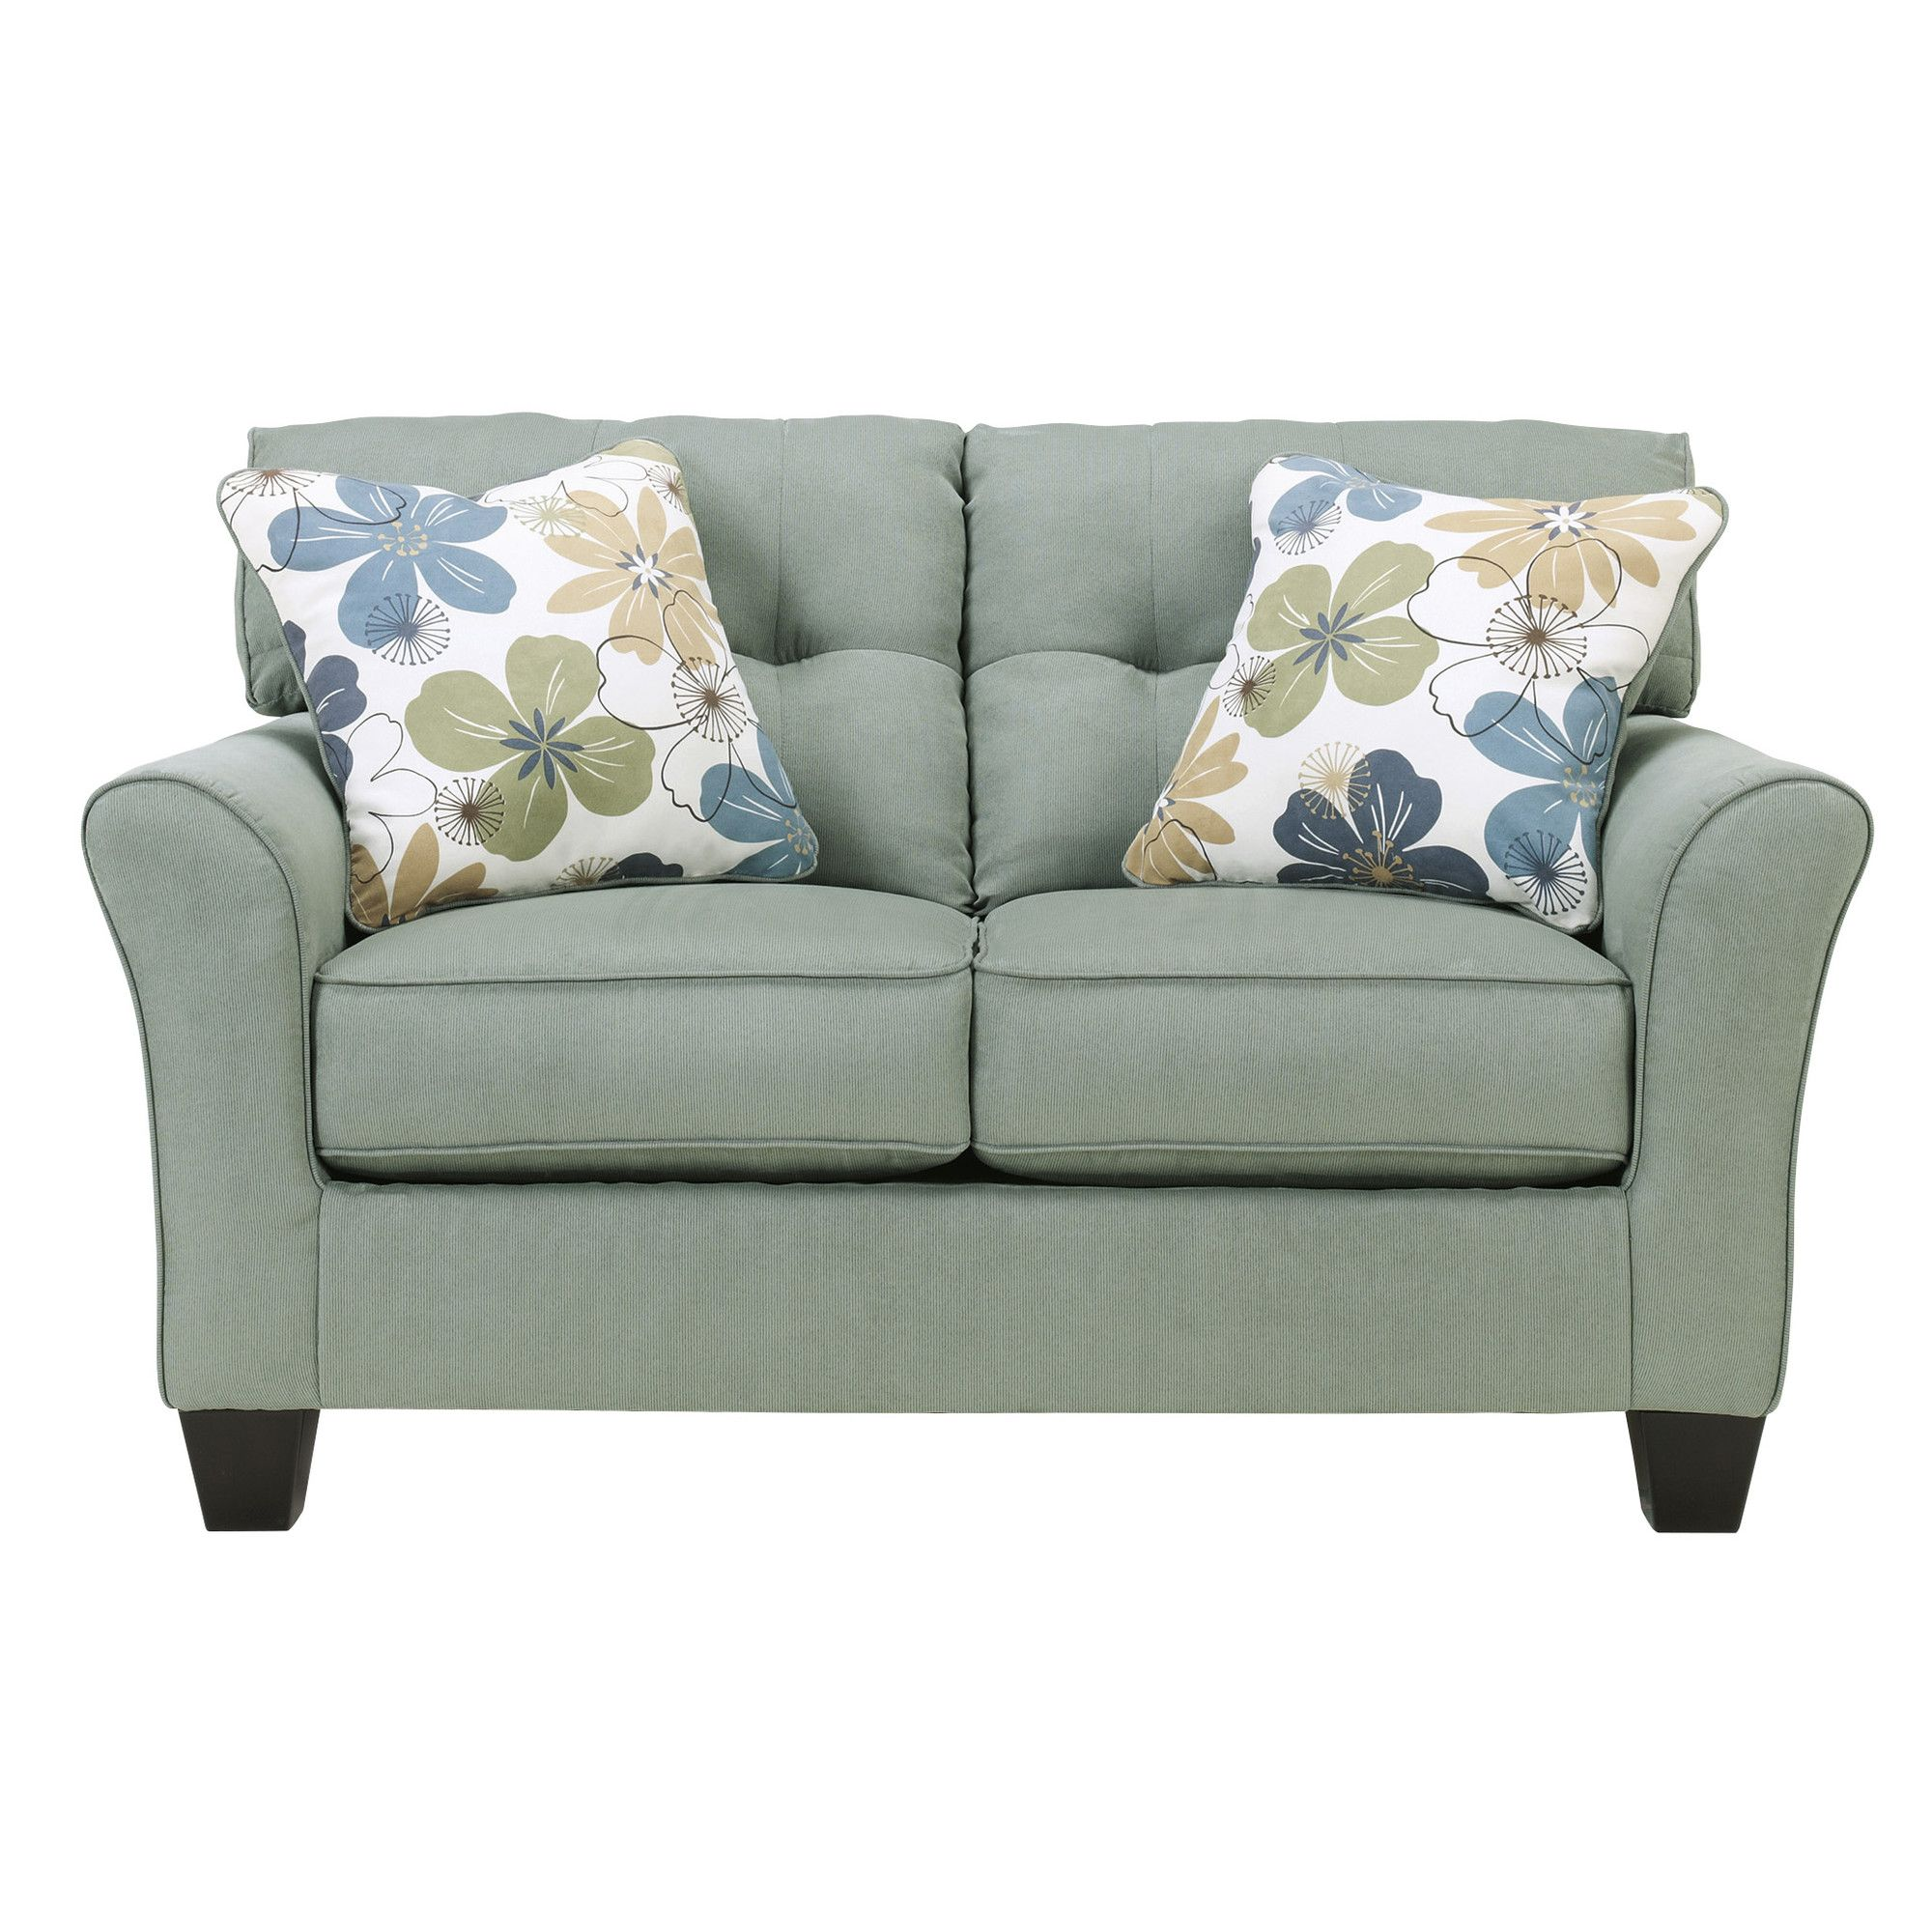 Signature design by ashley sanford loveseat u reviews wayfair